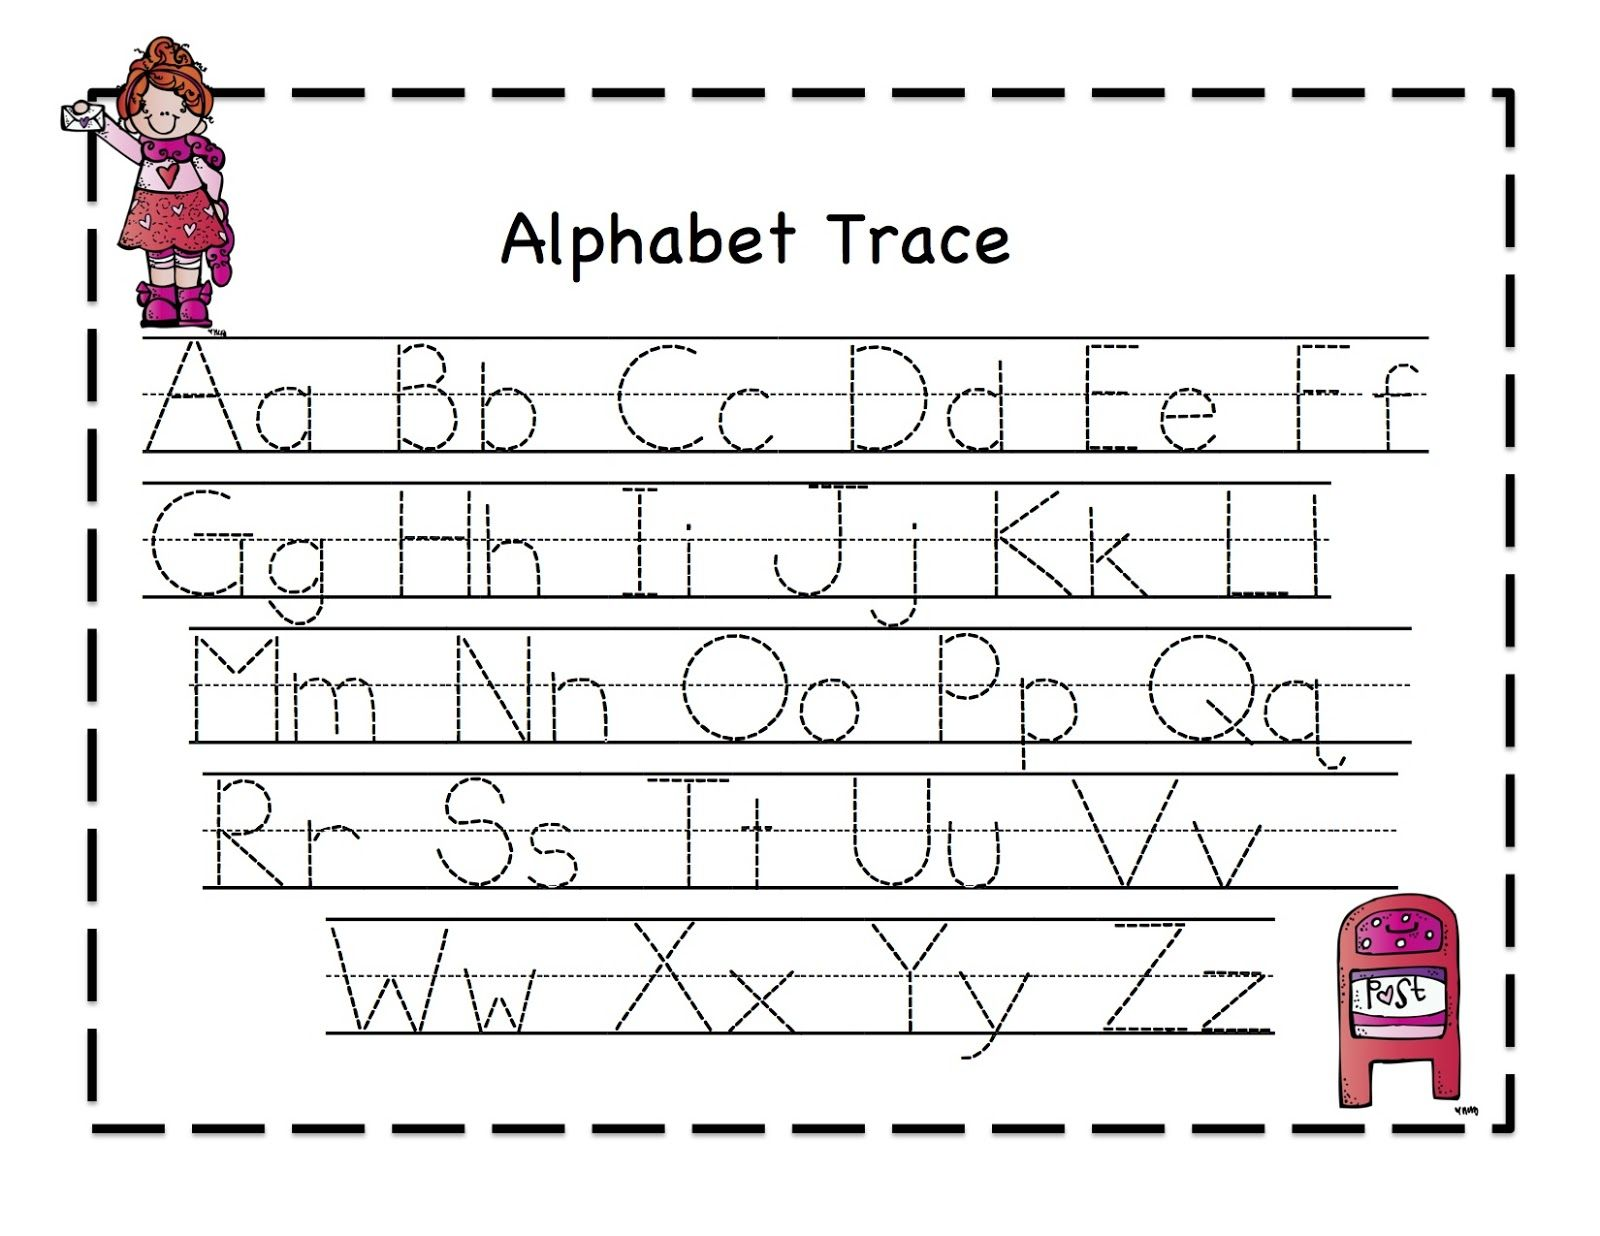 Printables Abc Tracing Worksheet alphabets tracing worksheets pichaglobal alphabet trace pichaglobal